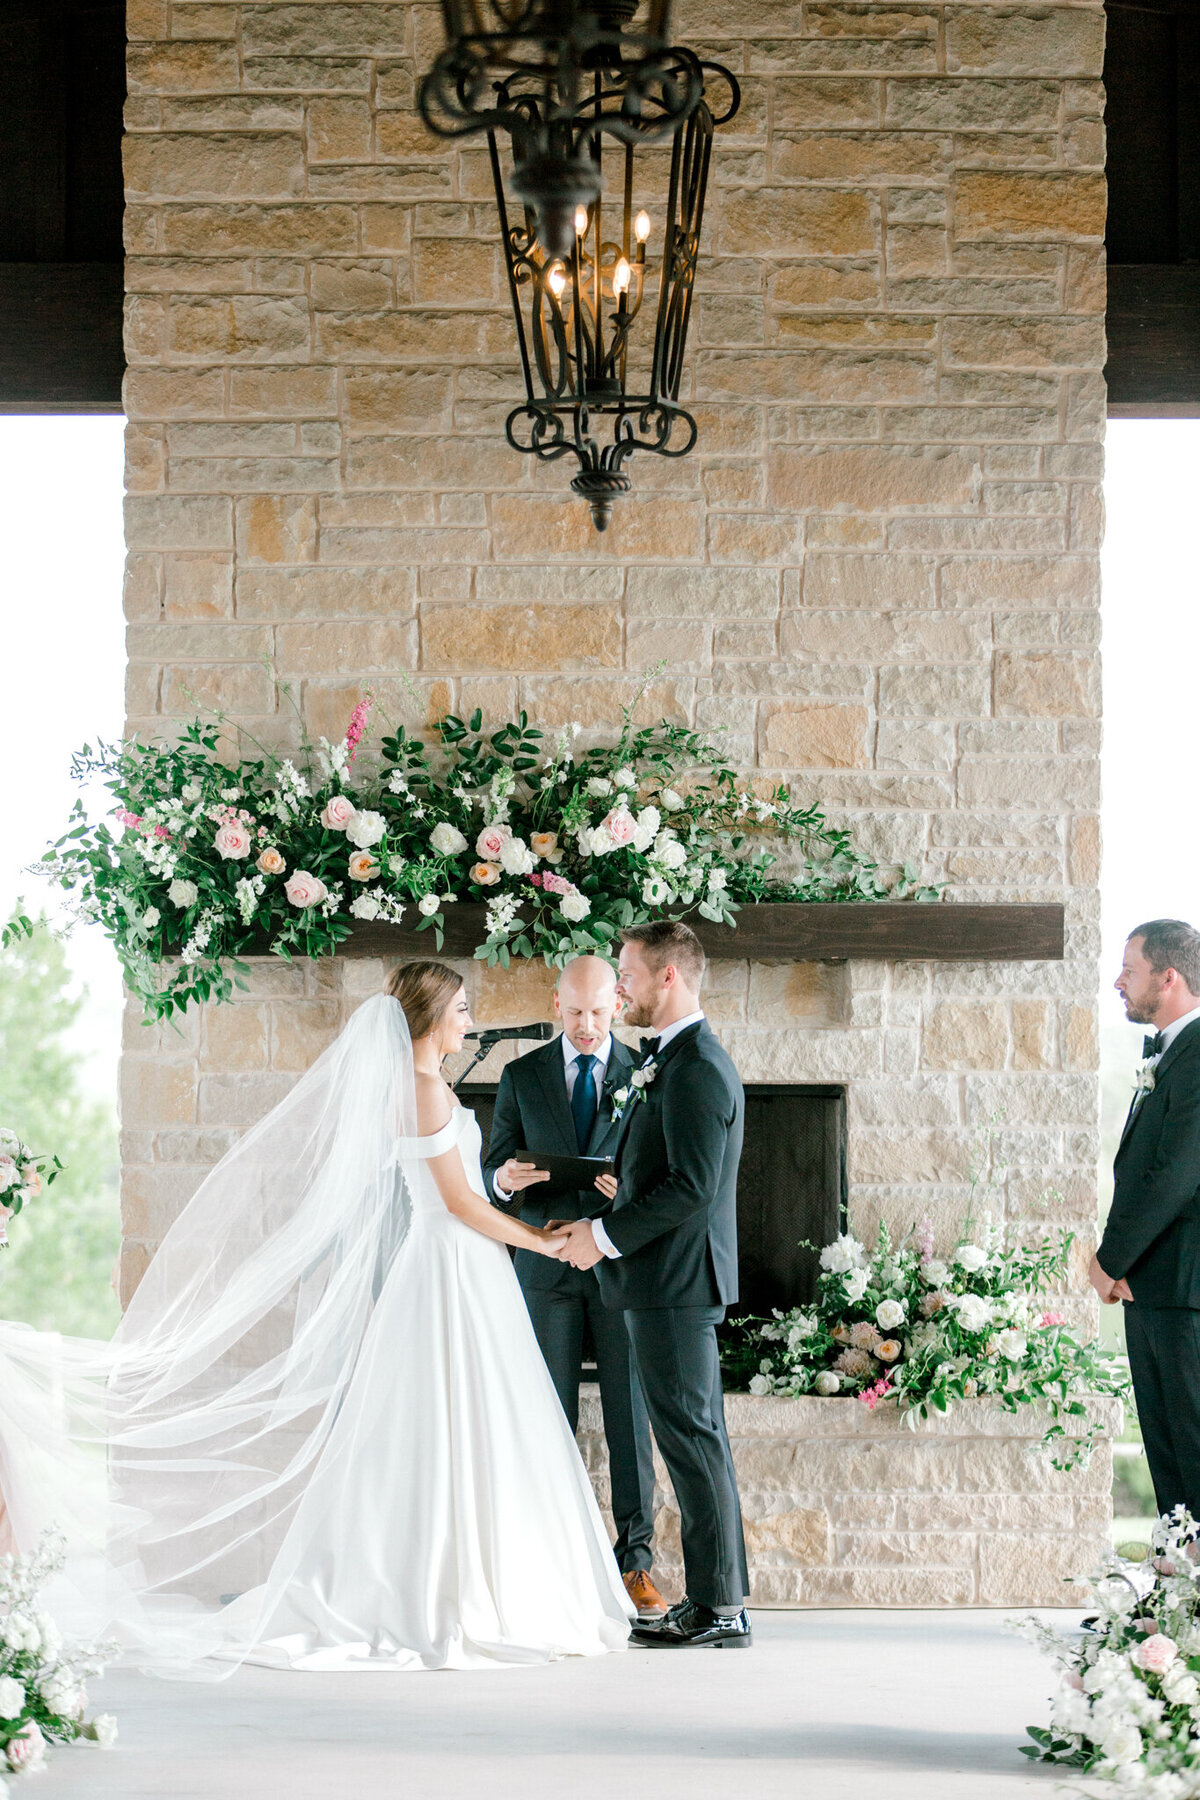 Lexi Broughton & Garrett Greer Wedding at Dove Ridge Vineyards | Sami Kathryn Photography | Dallas Wedding Photography-117